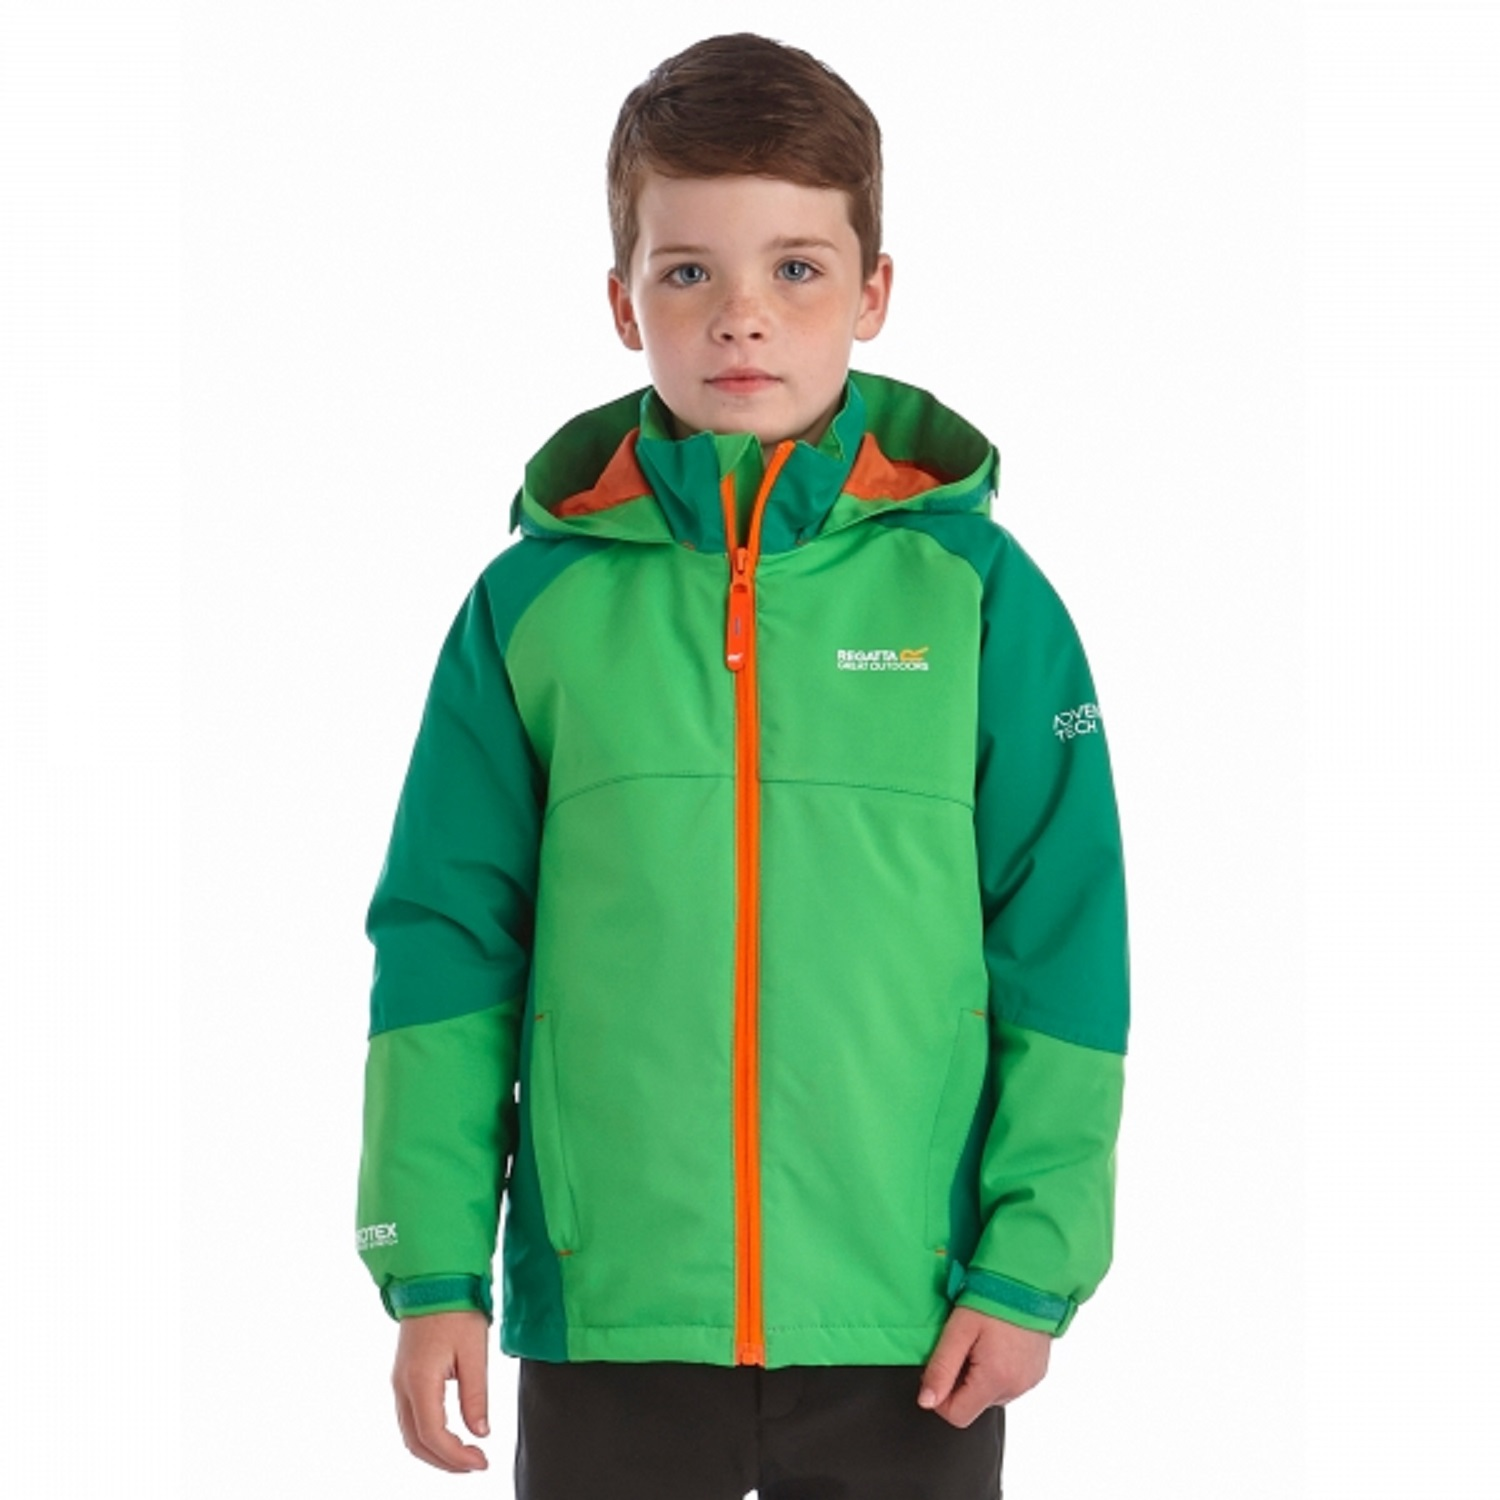 Boys Waterproof Jacket Jacket To